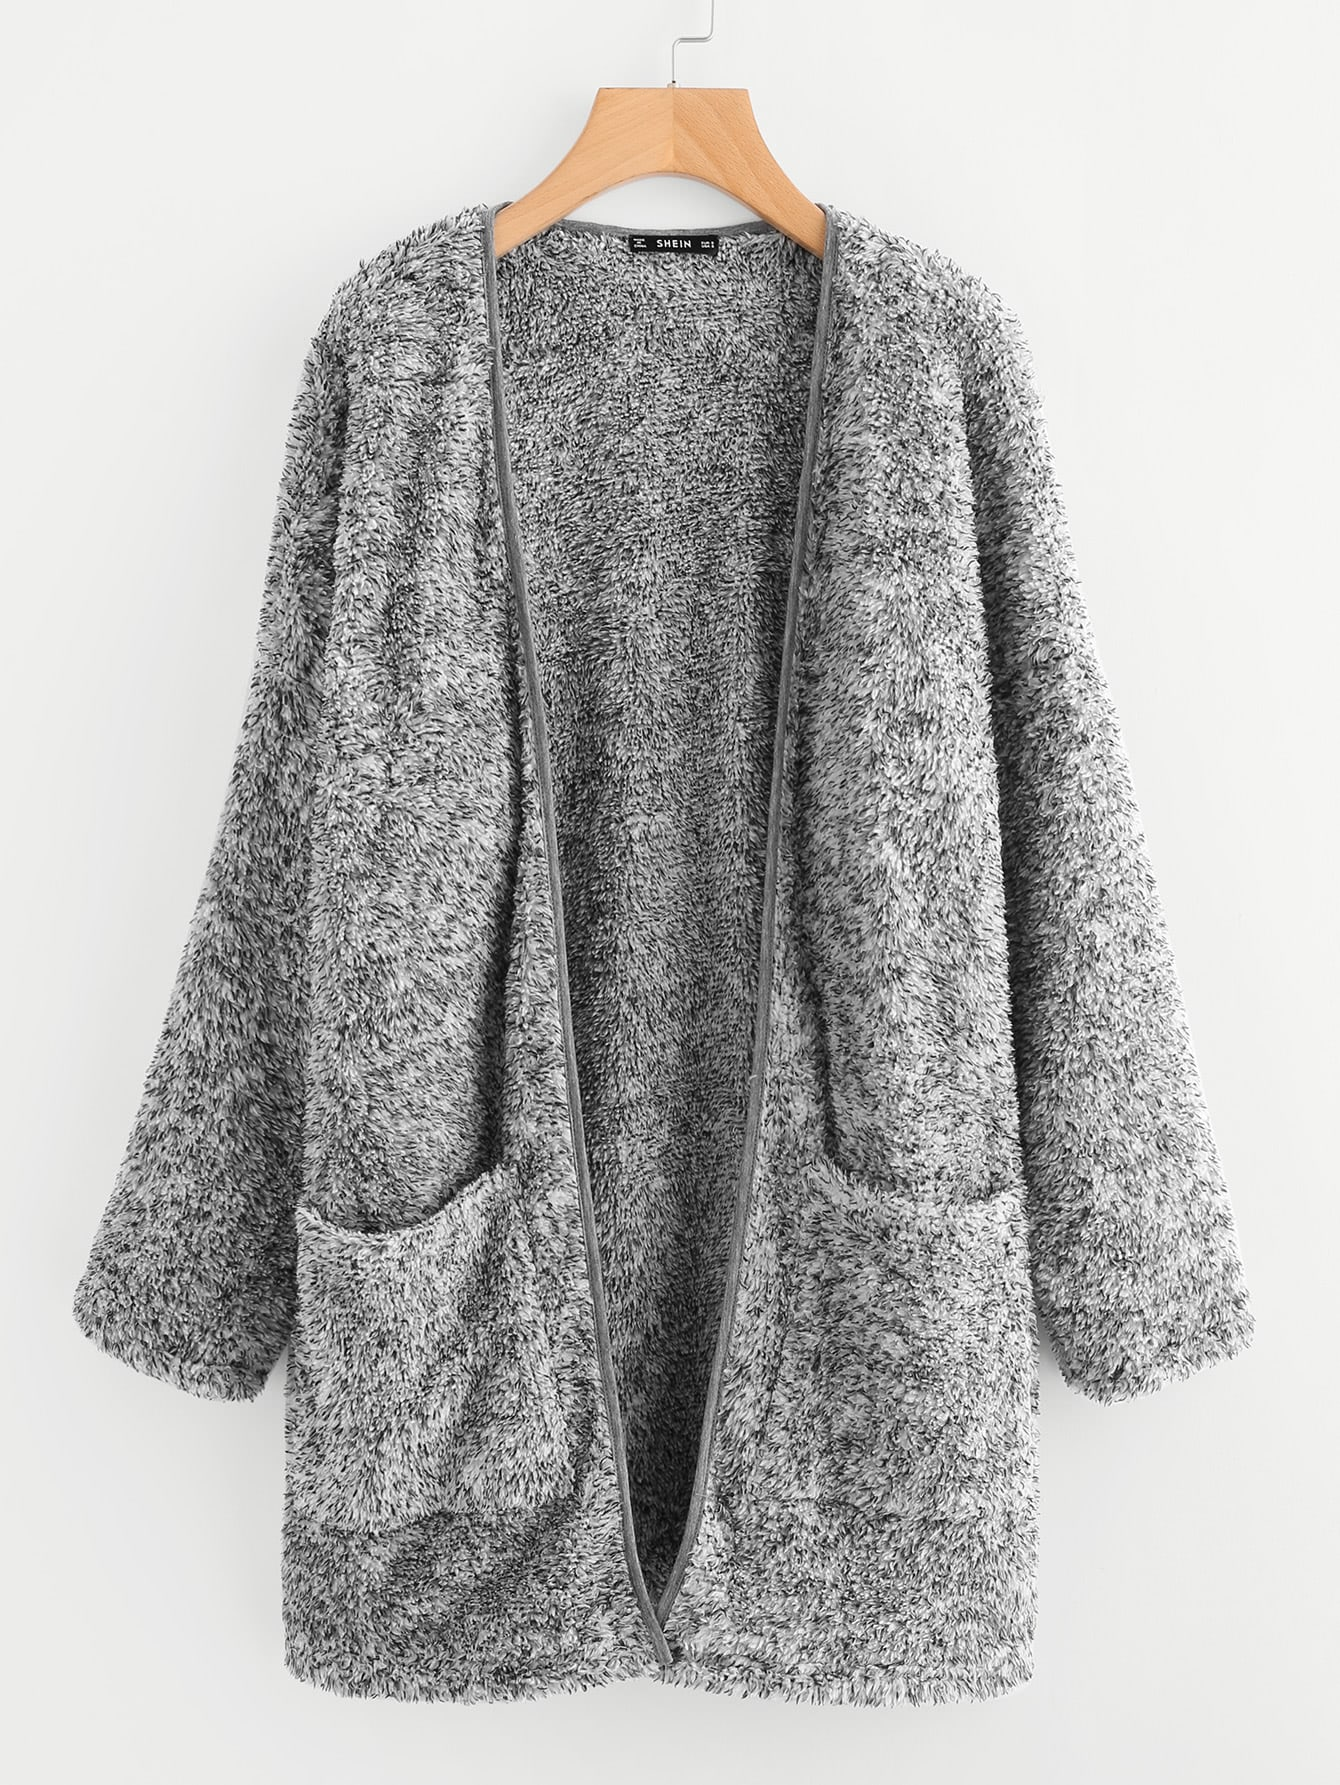 Patch Pocket Open Front Fuzzy Coat open front side pocket hooded coat